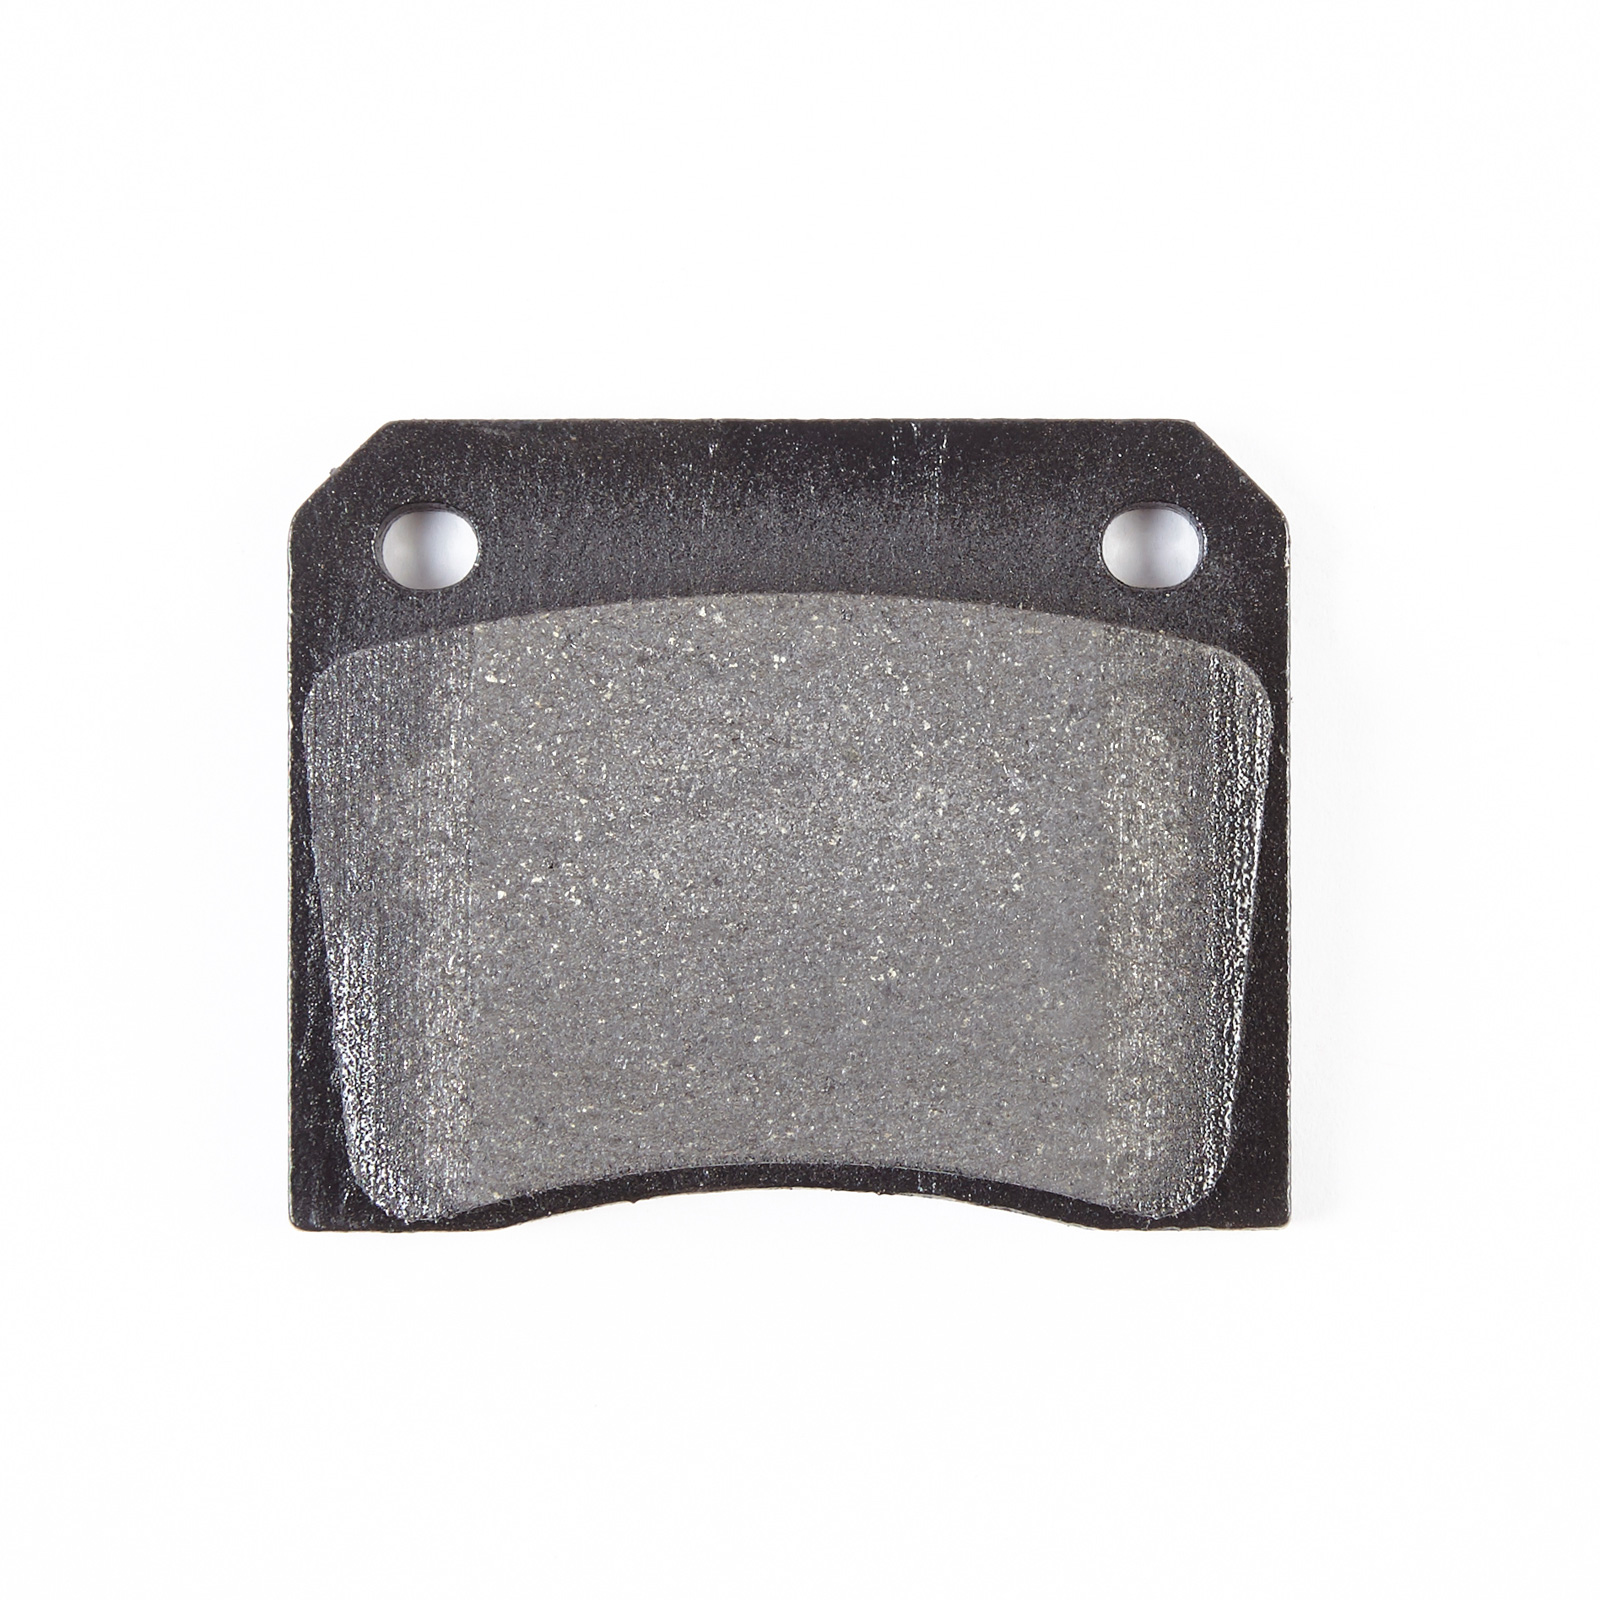 Aston Martin V8 Vantage Rear Brake Pads